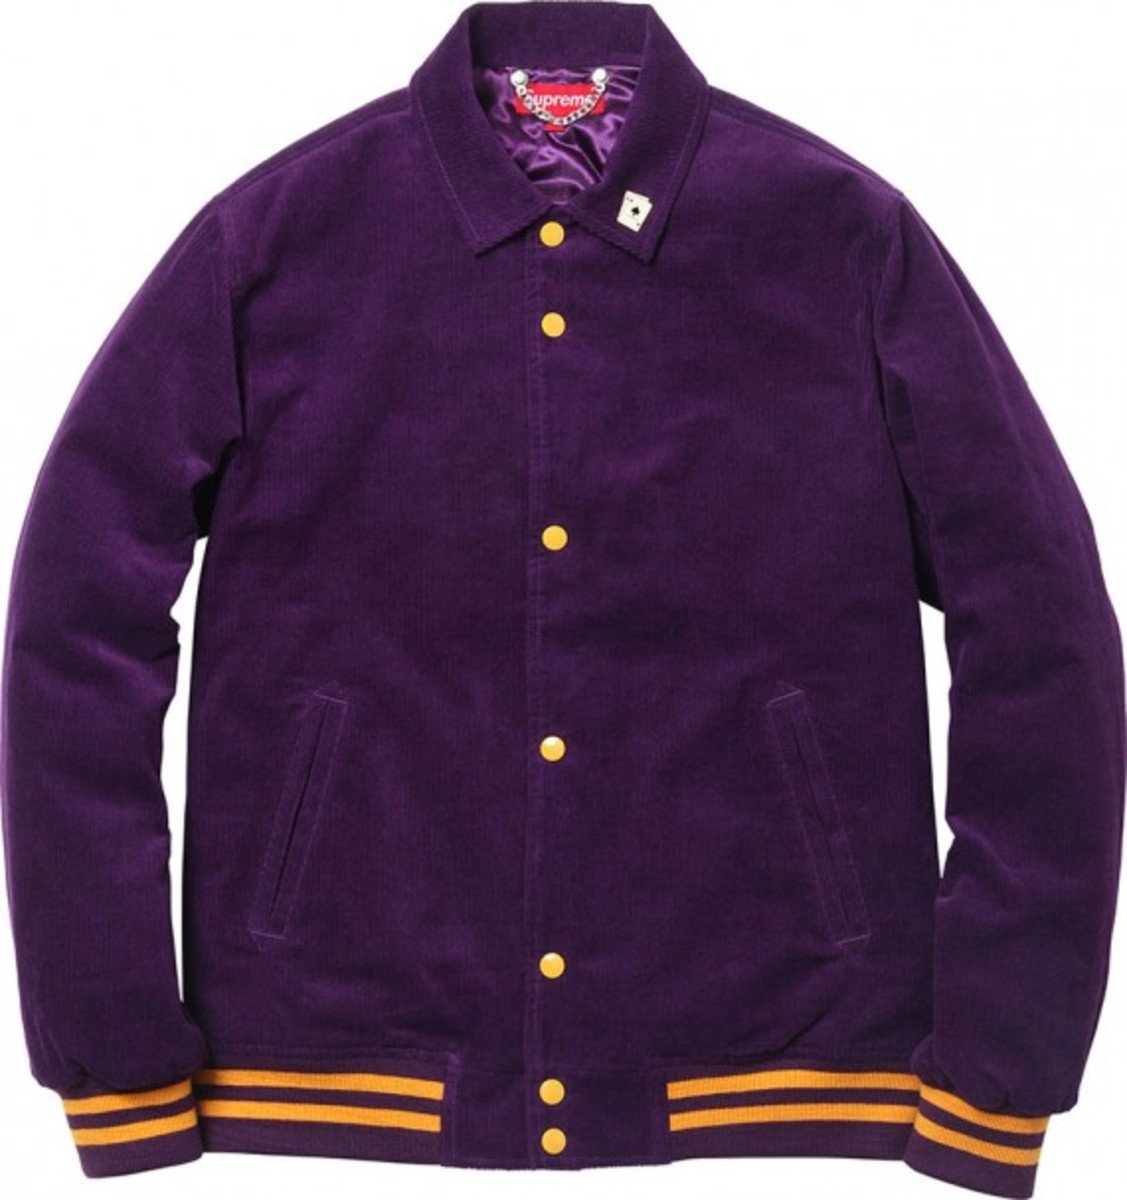 0-corduroy_club_jacket-zoom_1345455025